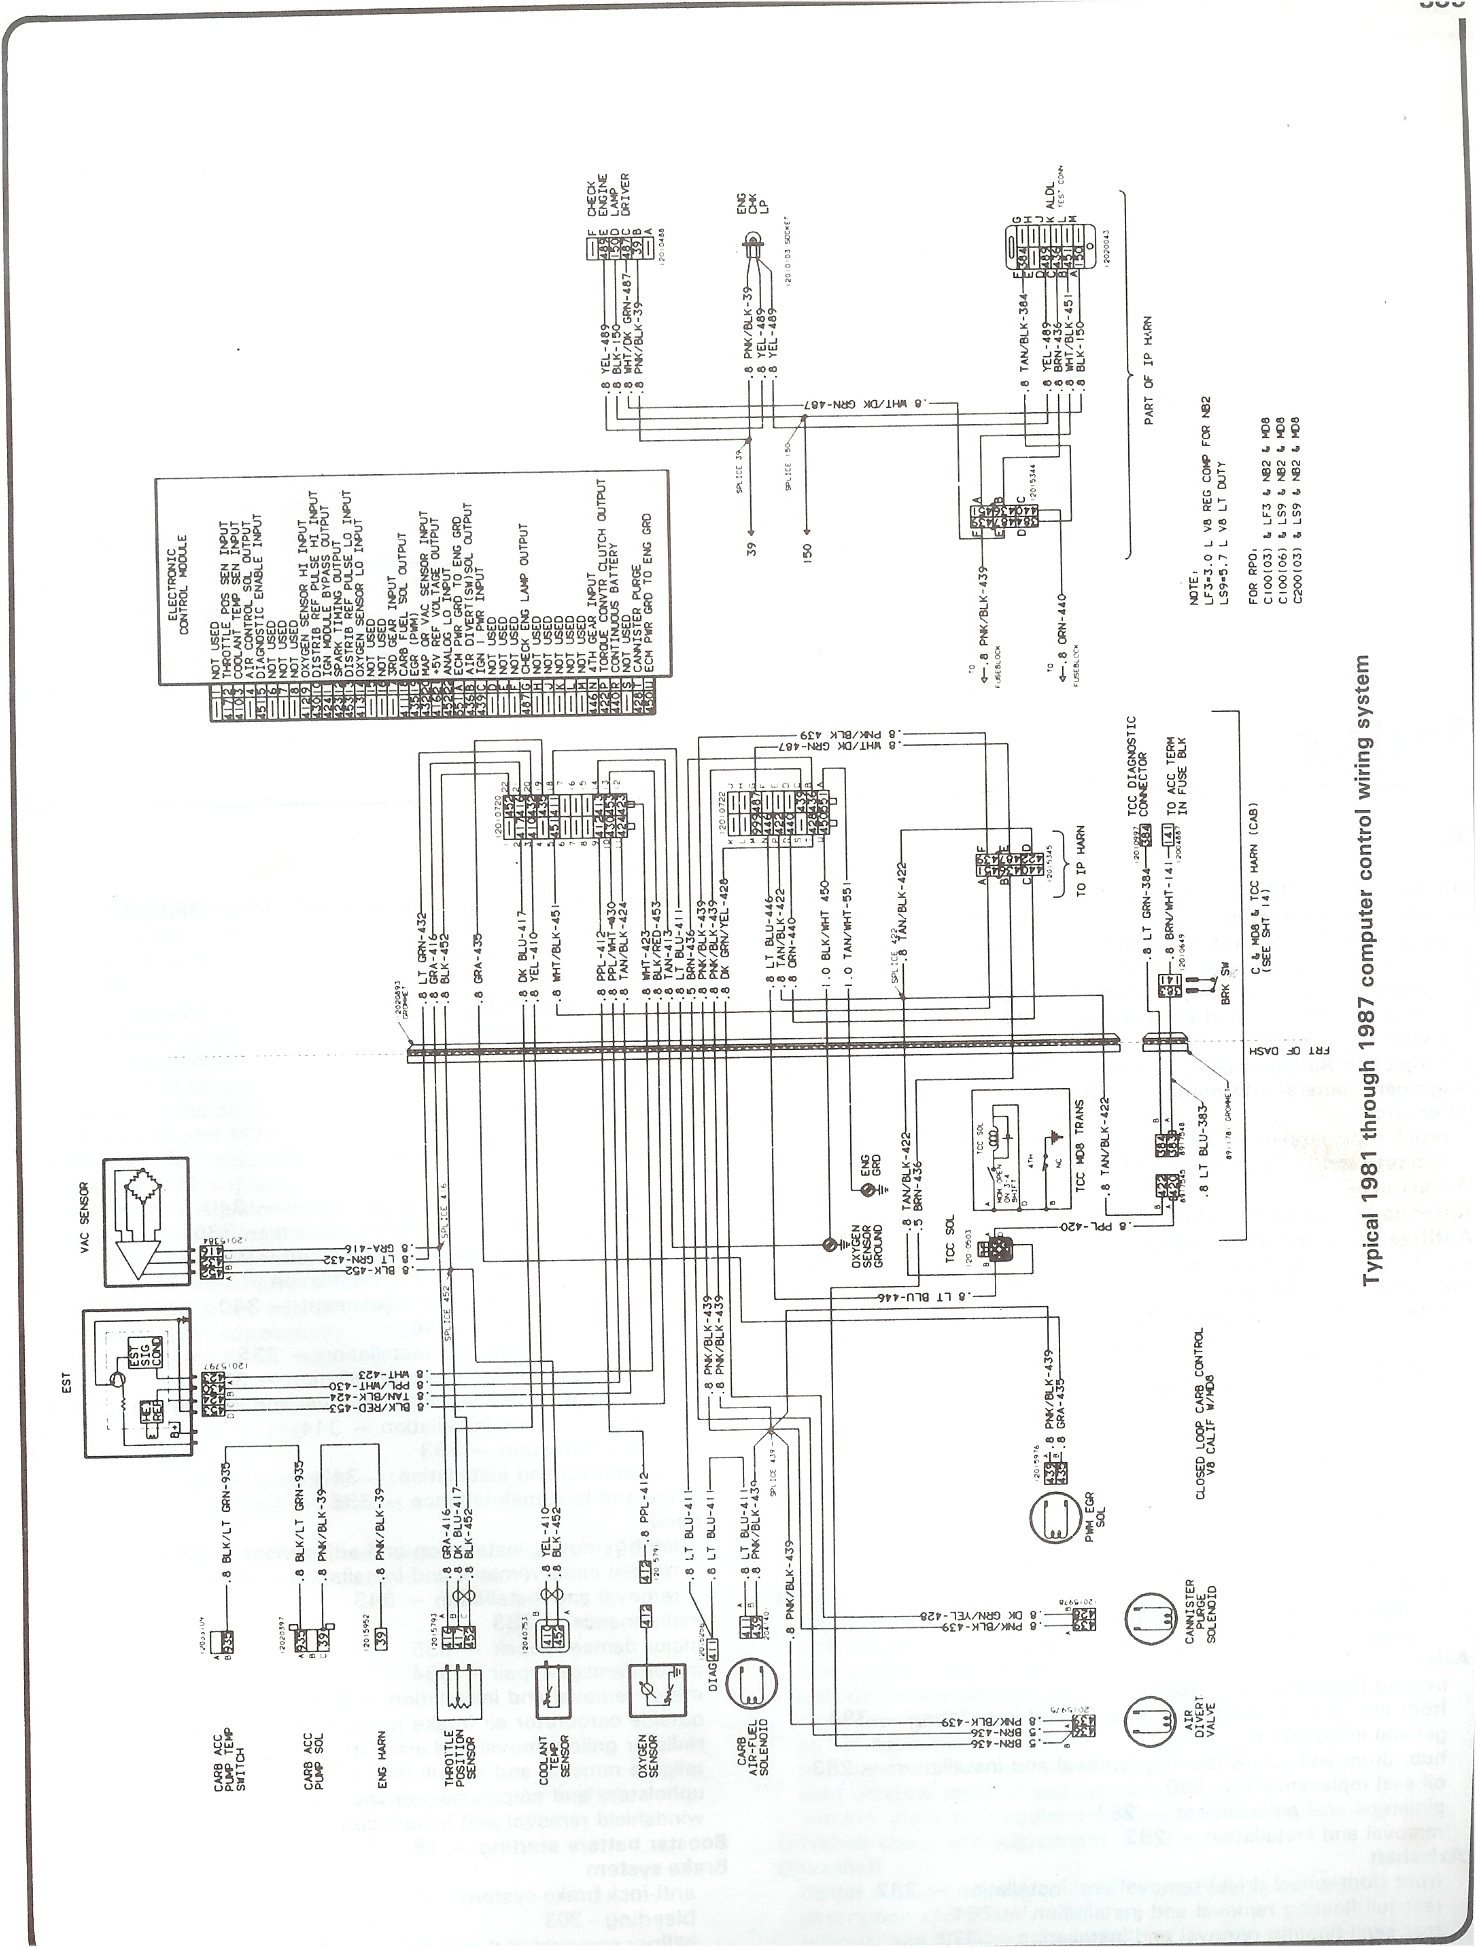 1986 Chevy Truck Wiring Harness : 31 Wiring Diagram Images